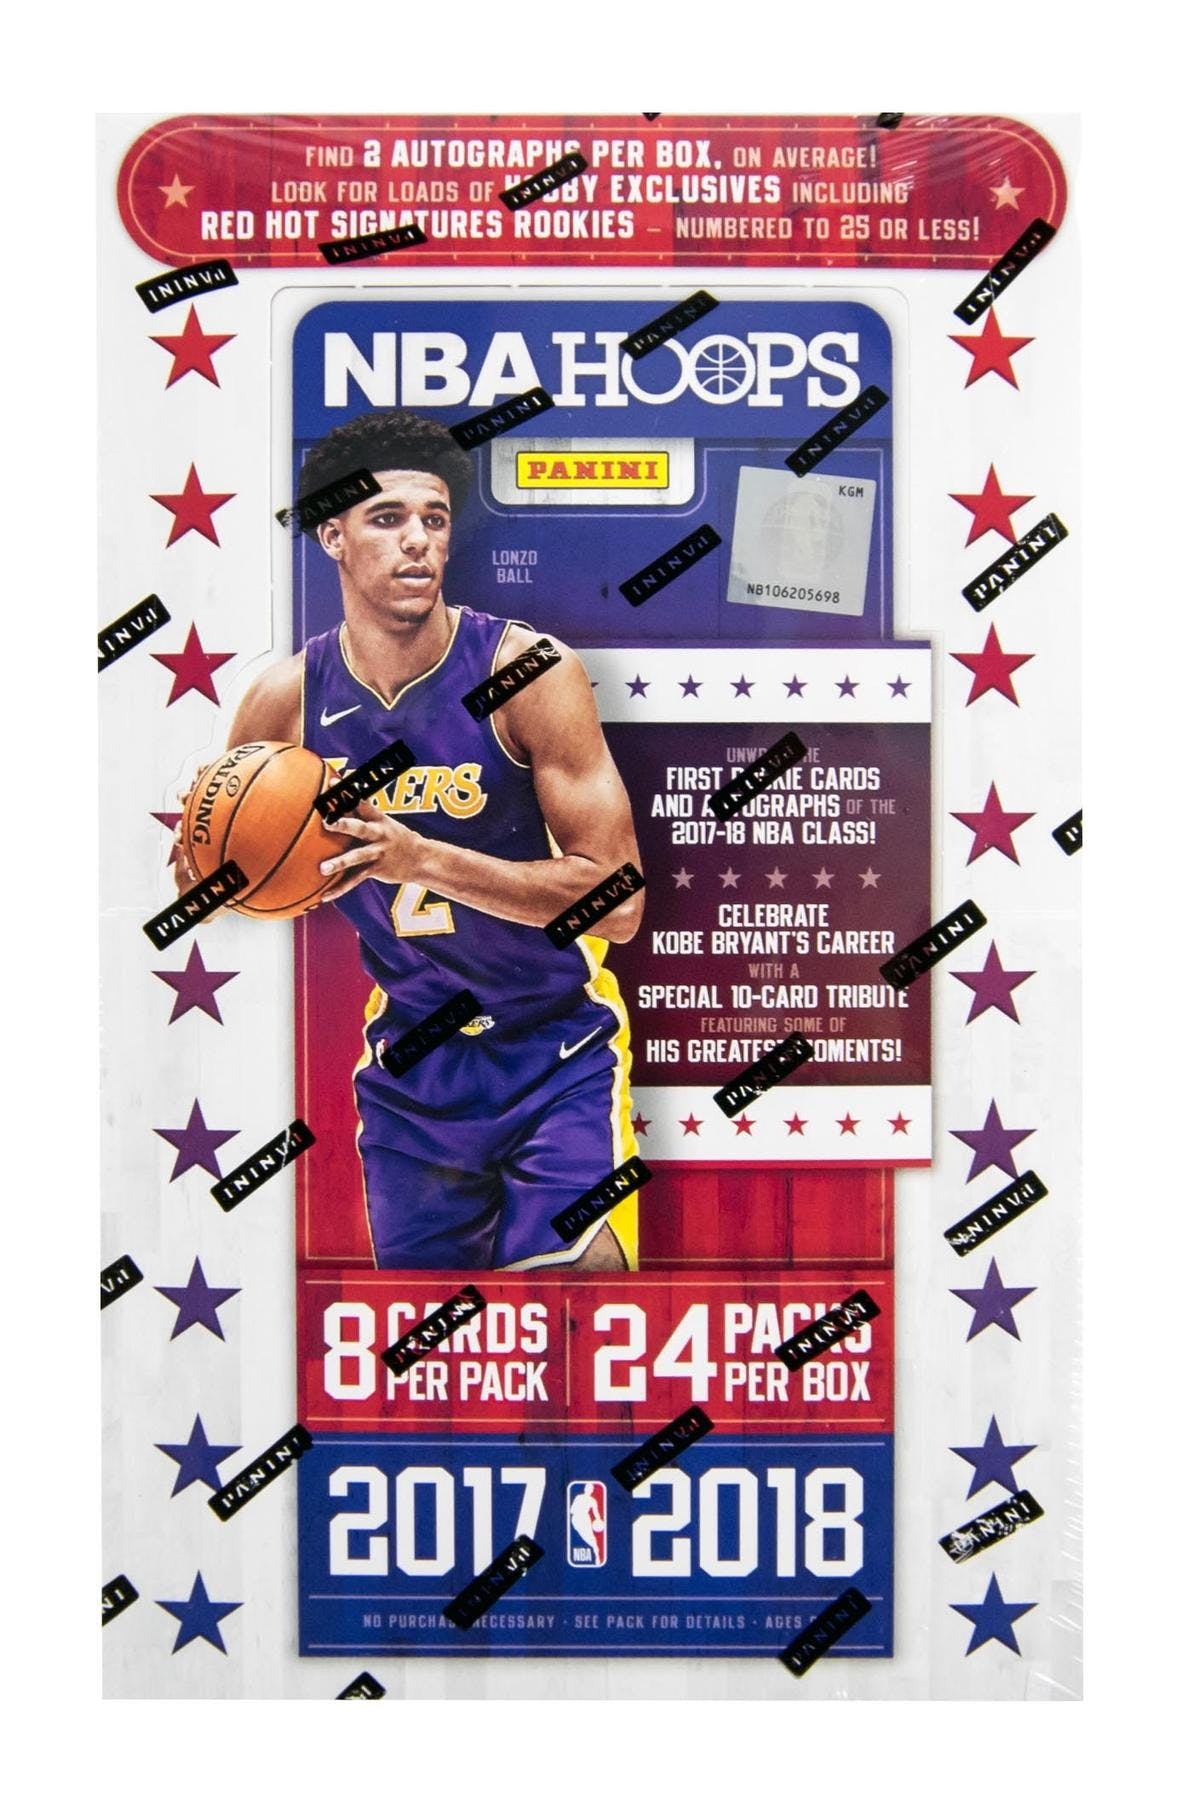 a4f054651e0 2017 18 Panini Hoops Basketball Hobby Box